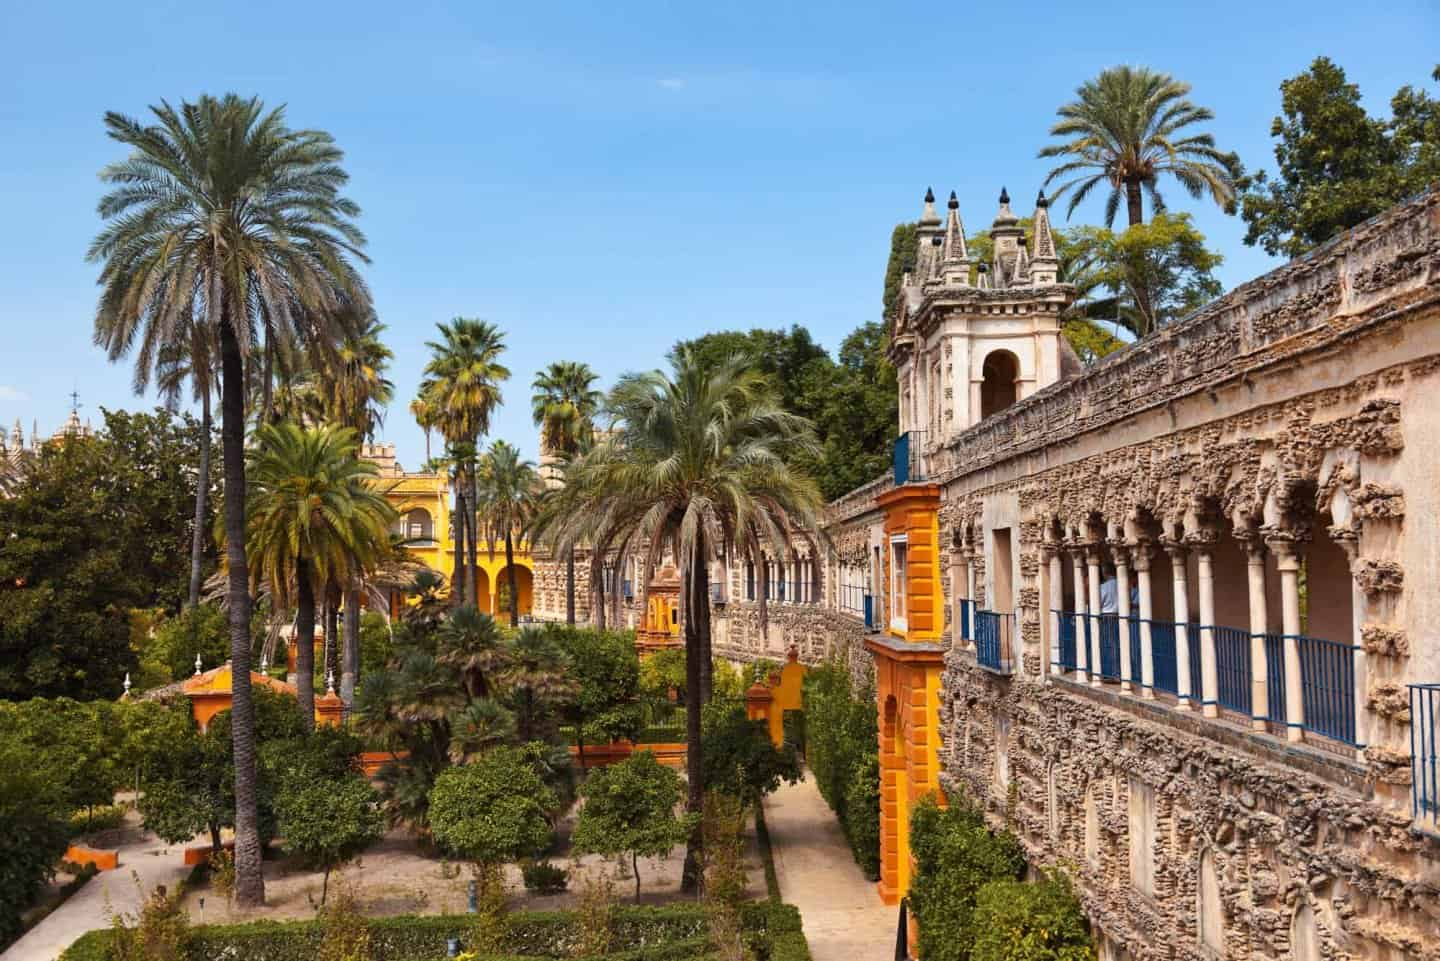 3 Days in Seville - Real Alcazar Gardens in Seville Spain - nature and architecture background